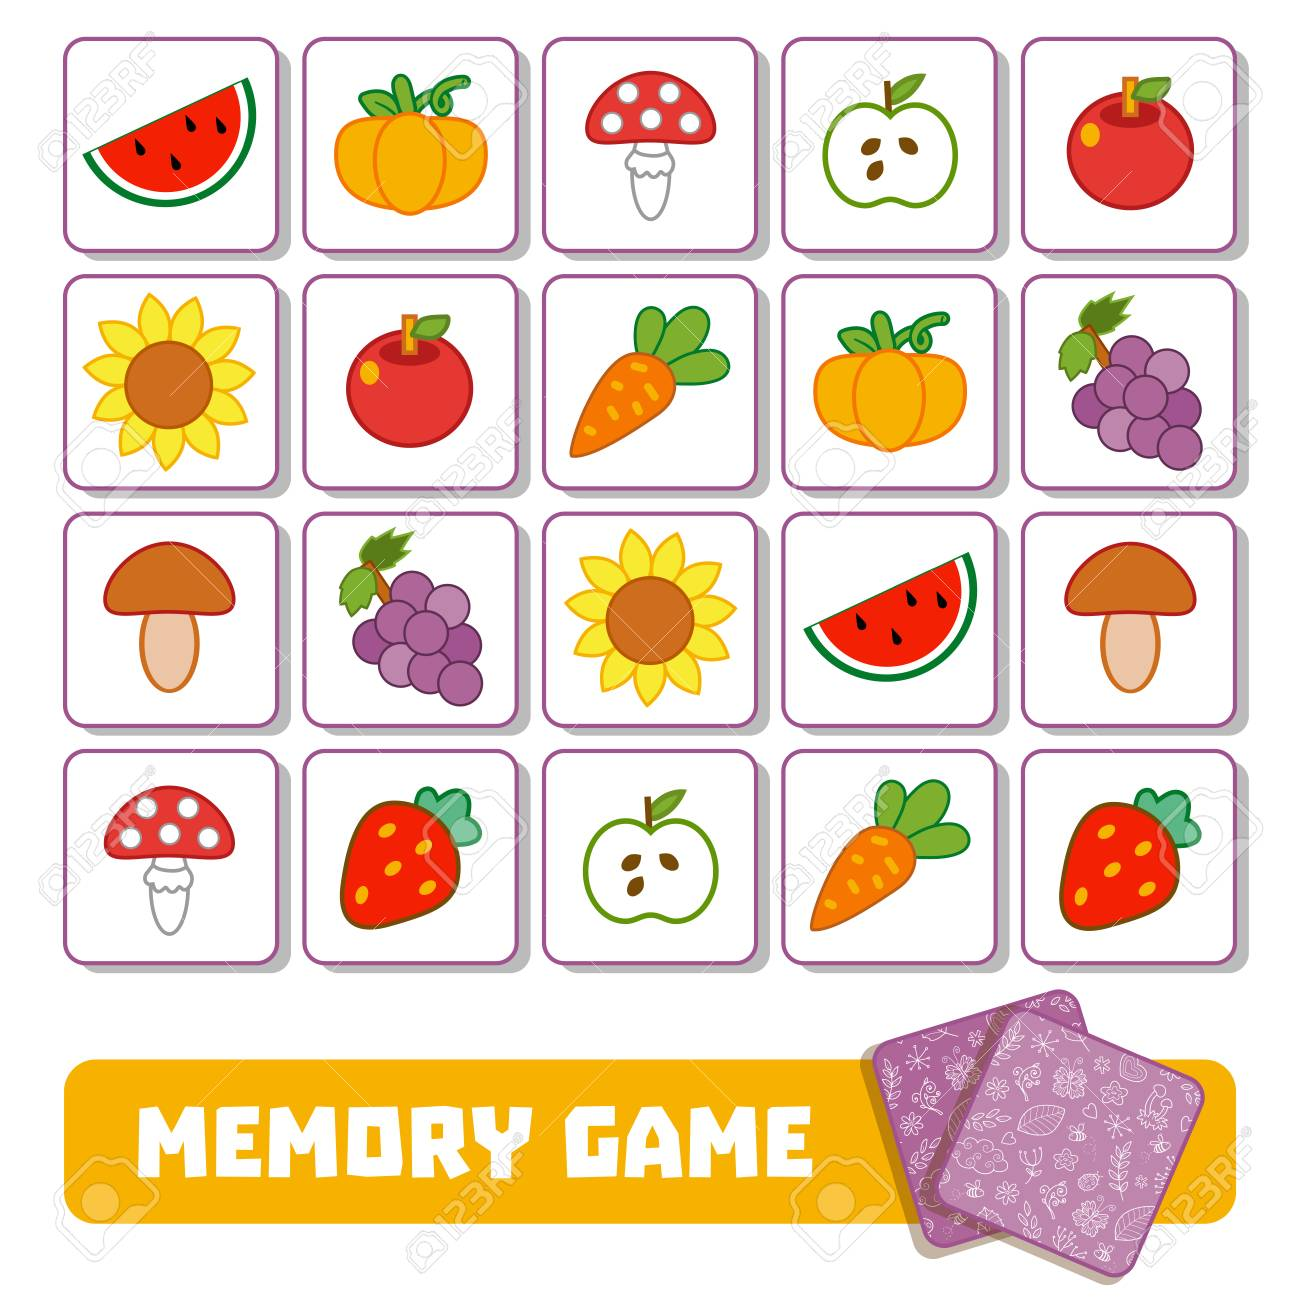 Vector memory game for children, cards with fruits and vegetables - 79471514